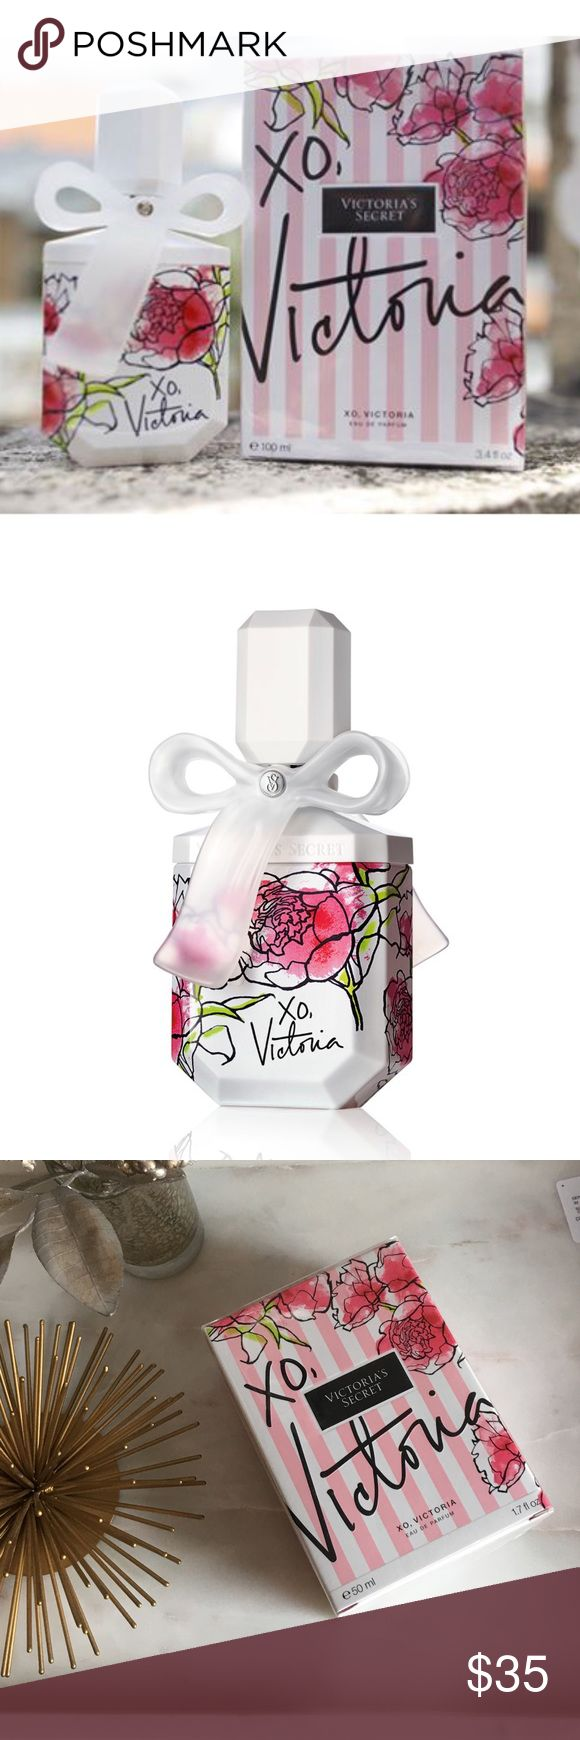 "XO, Victoria | 1.7oz Eau de Parfum This 1.7oz XO, Victoria eau de perfume comes in the cutest bottle! It's still sealed and has never been opened; retails for $52! Smells very light and airy -- is described on the box as ""sheer perfection: victoria rose 